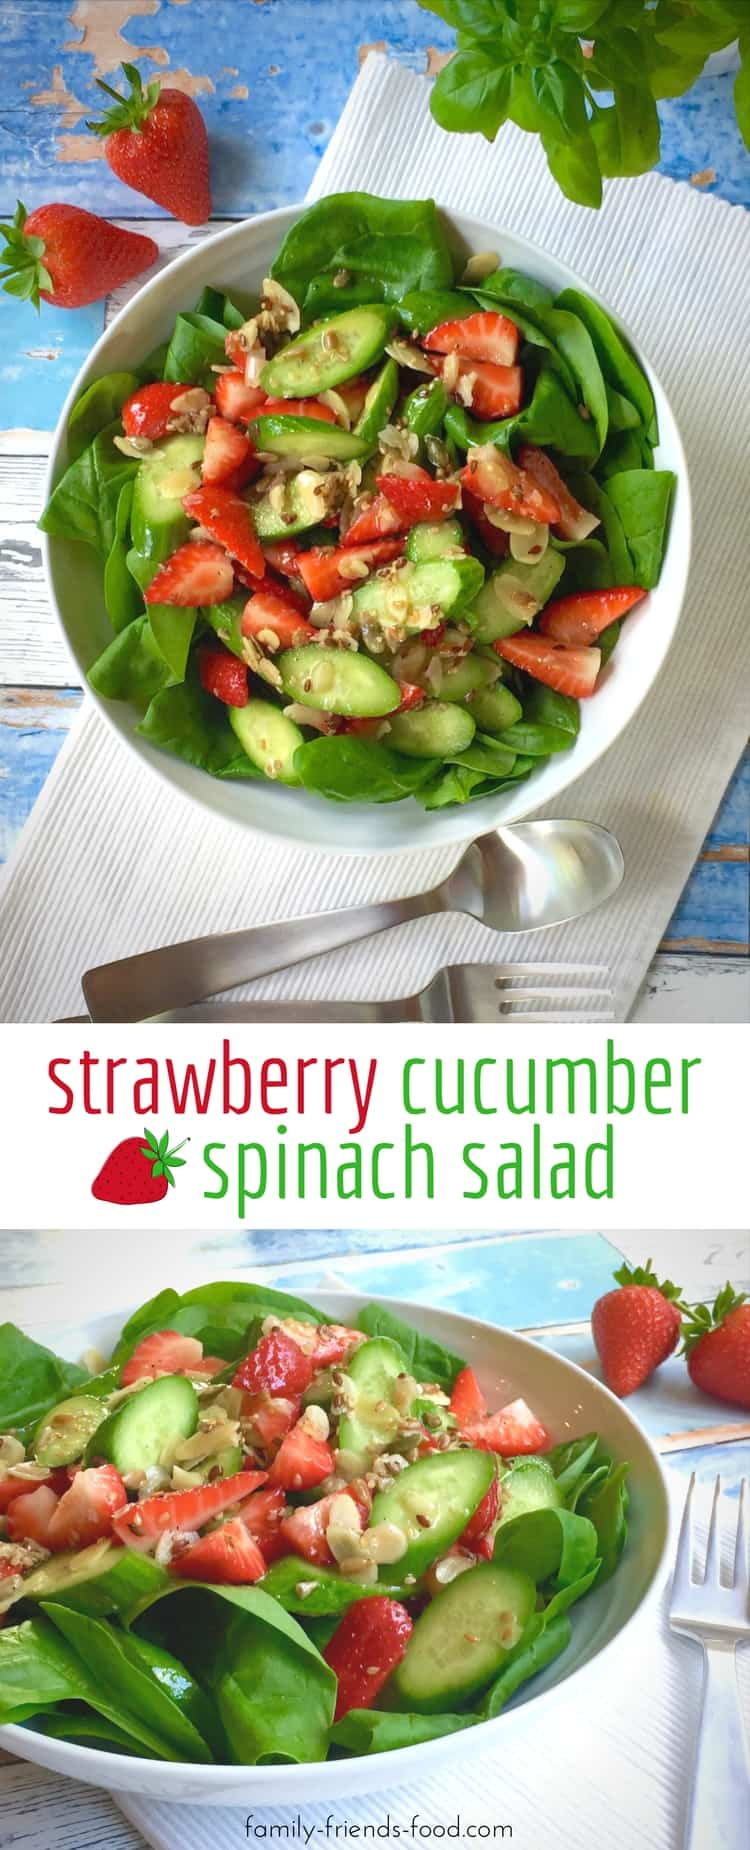 Sweet, tangy, crunchy, tender & crisp, this gorgeous summery spinach salad has it all! Beautiful ripe strawberries & a light dressing make the flavour pop.